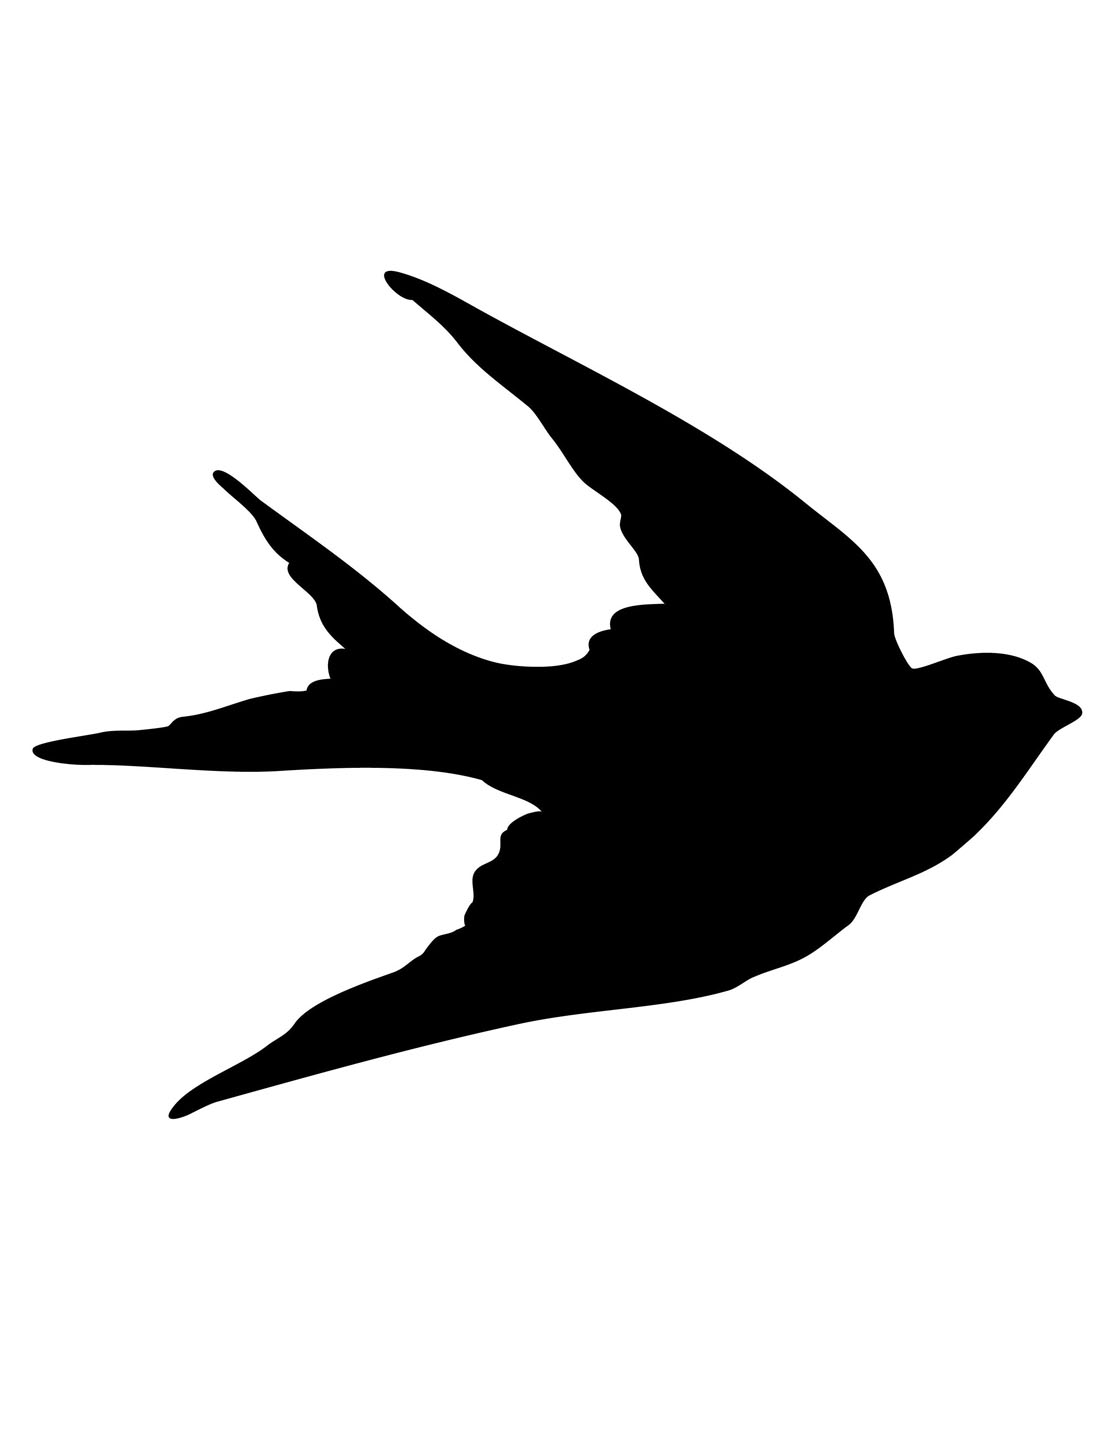 Transfer Printables - Bird Silhouettes - Swallows - The Graphics Fairy c859aa141e16a